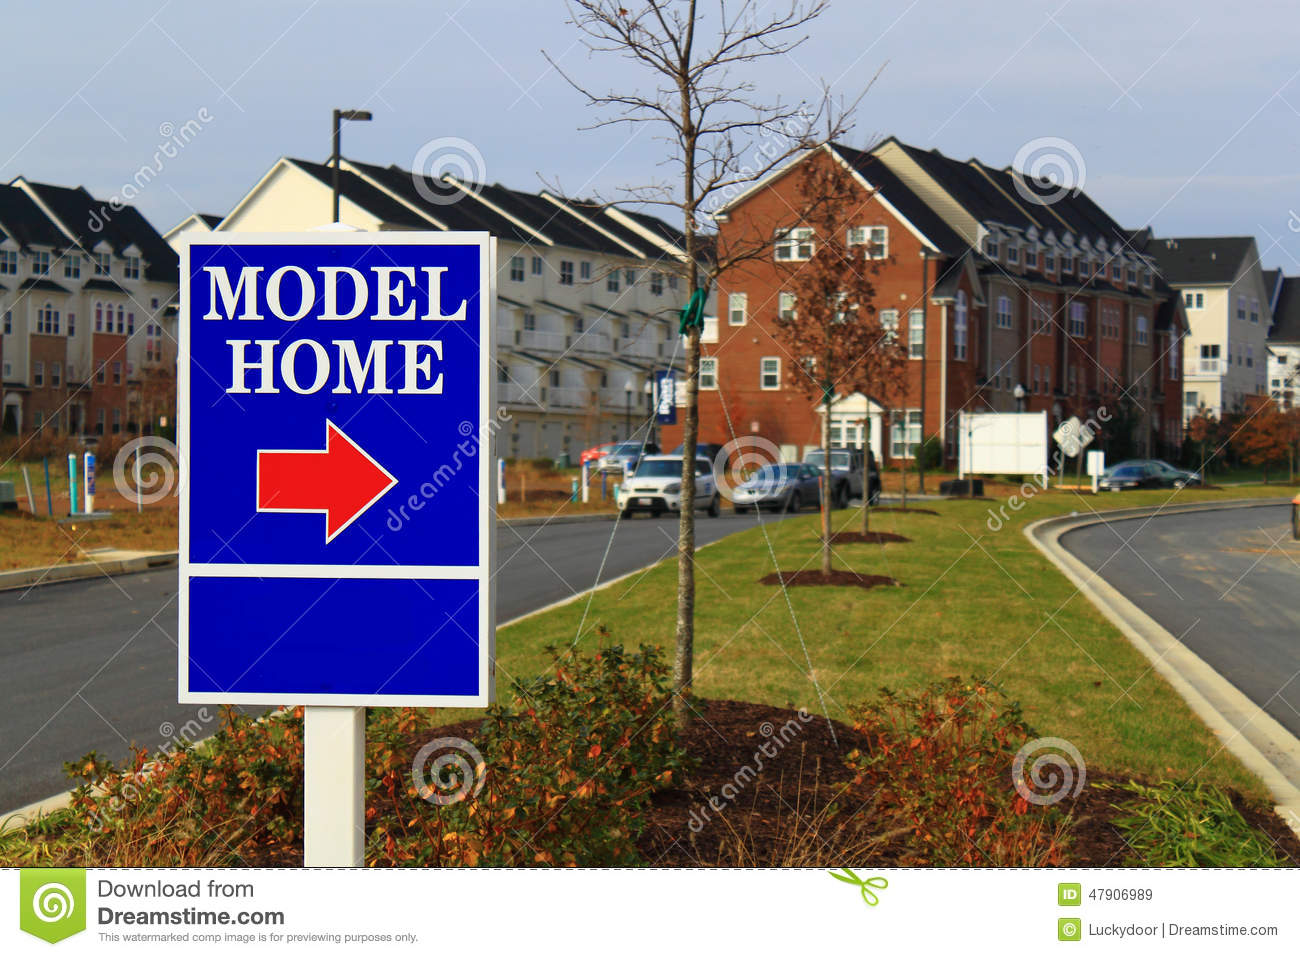 model home sign stock image image of estate advertise 47906989